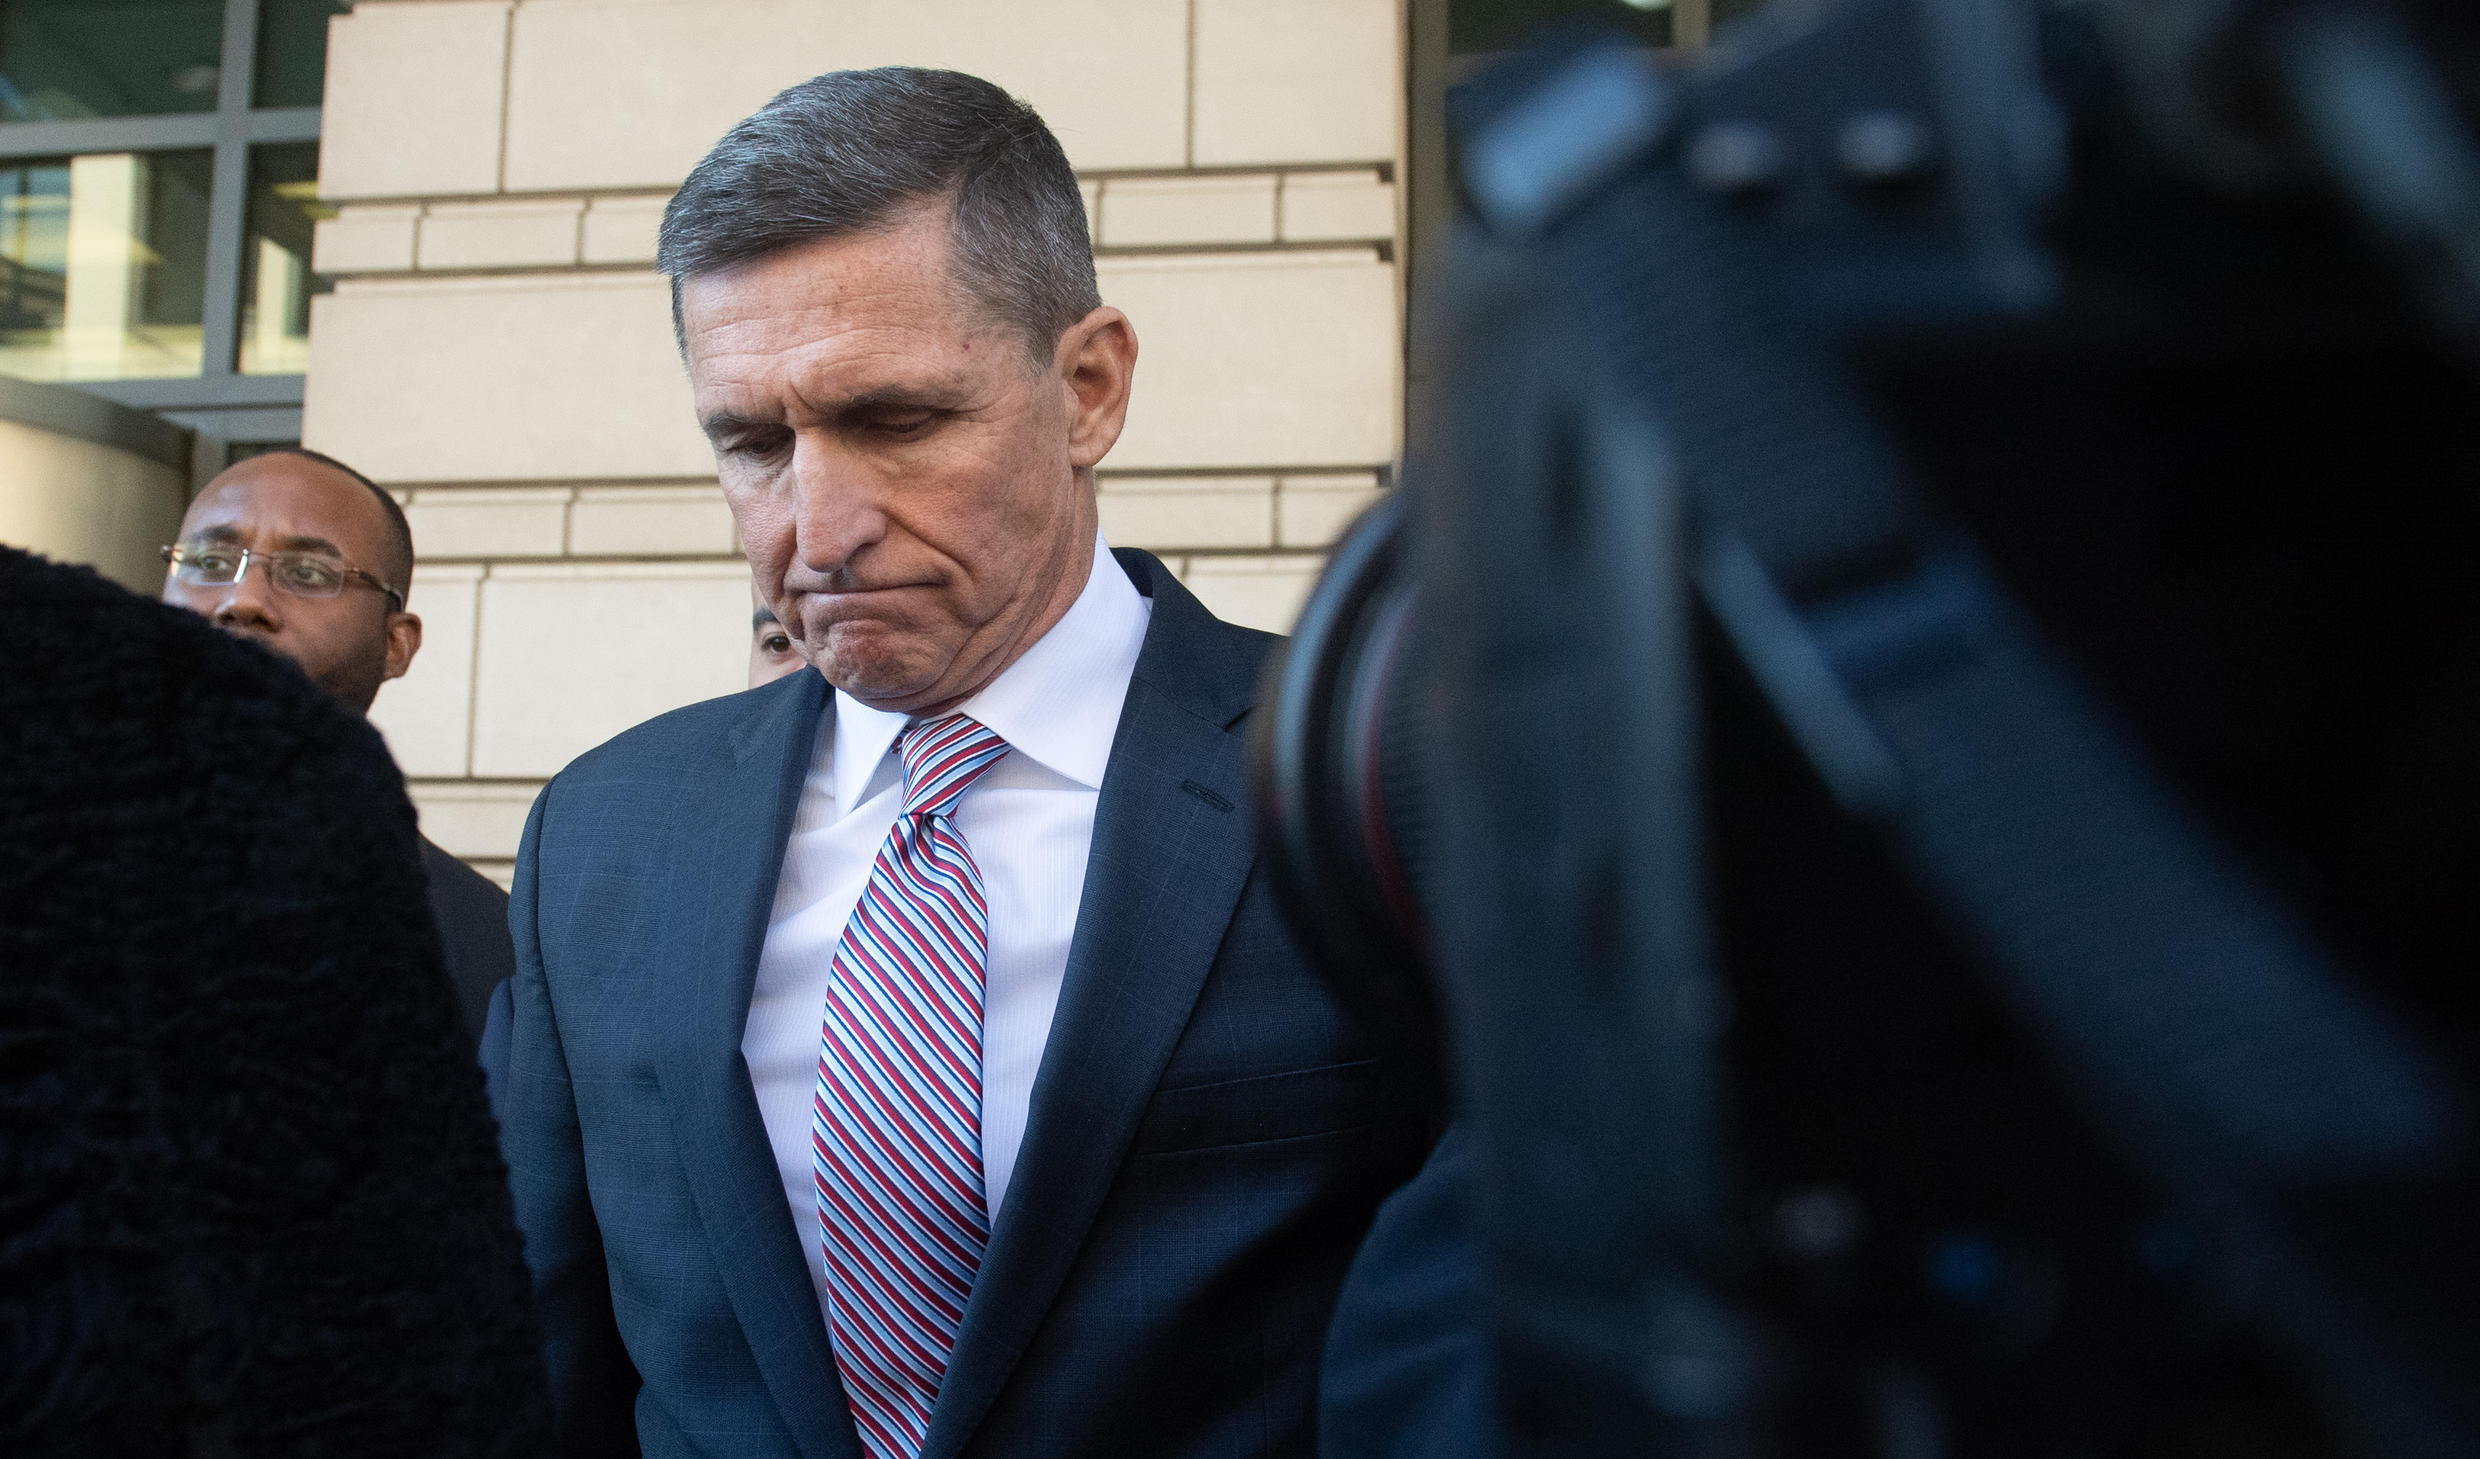 Former White House National Security Advisor General Michael Flynn originally pleaded guilty to lying to the FBI in the Russia election meddling investigation, but now seeks to have his case thrown out